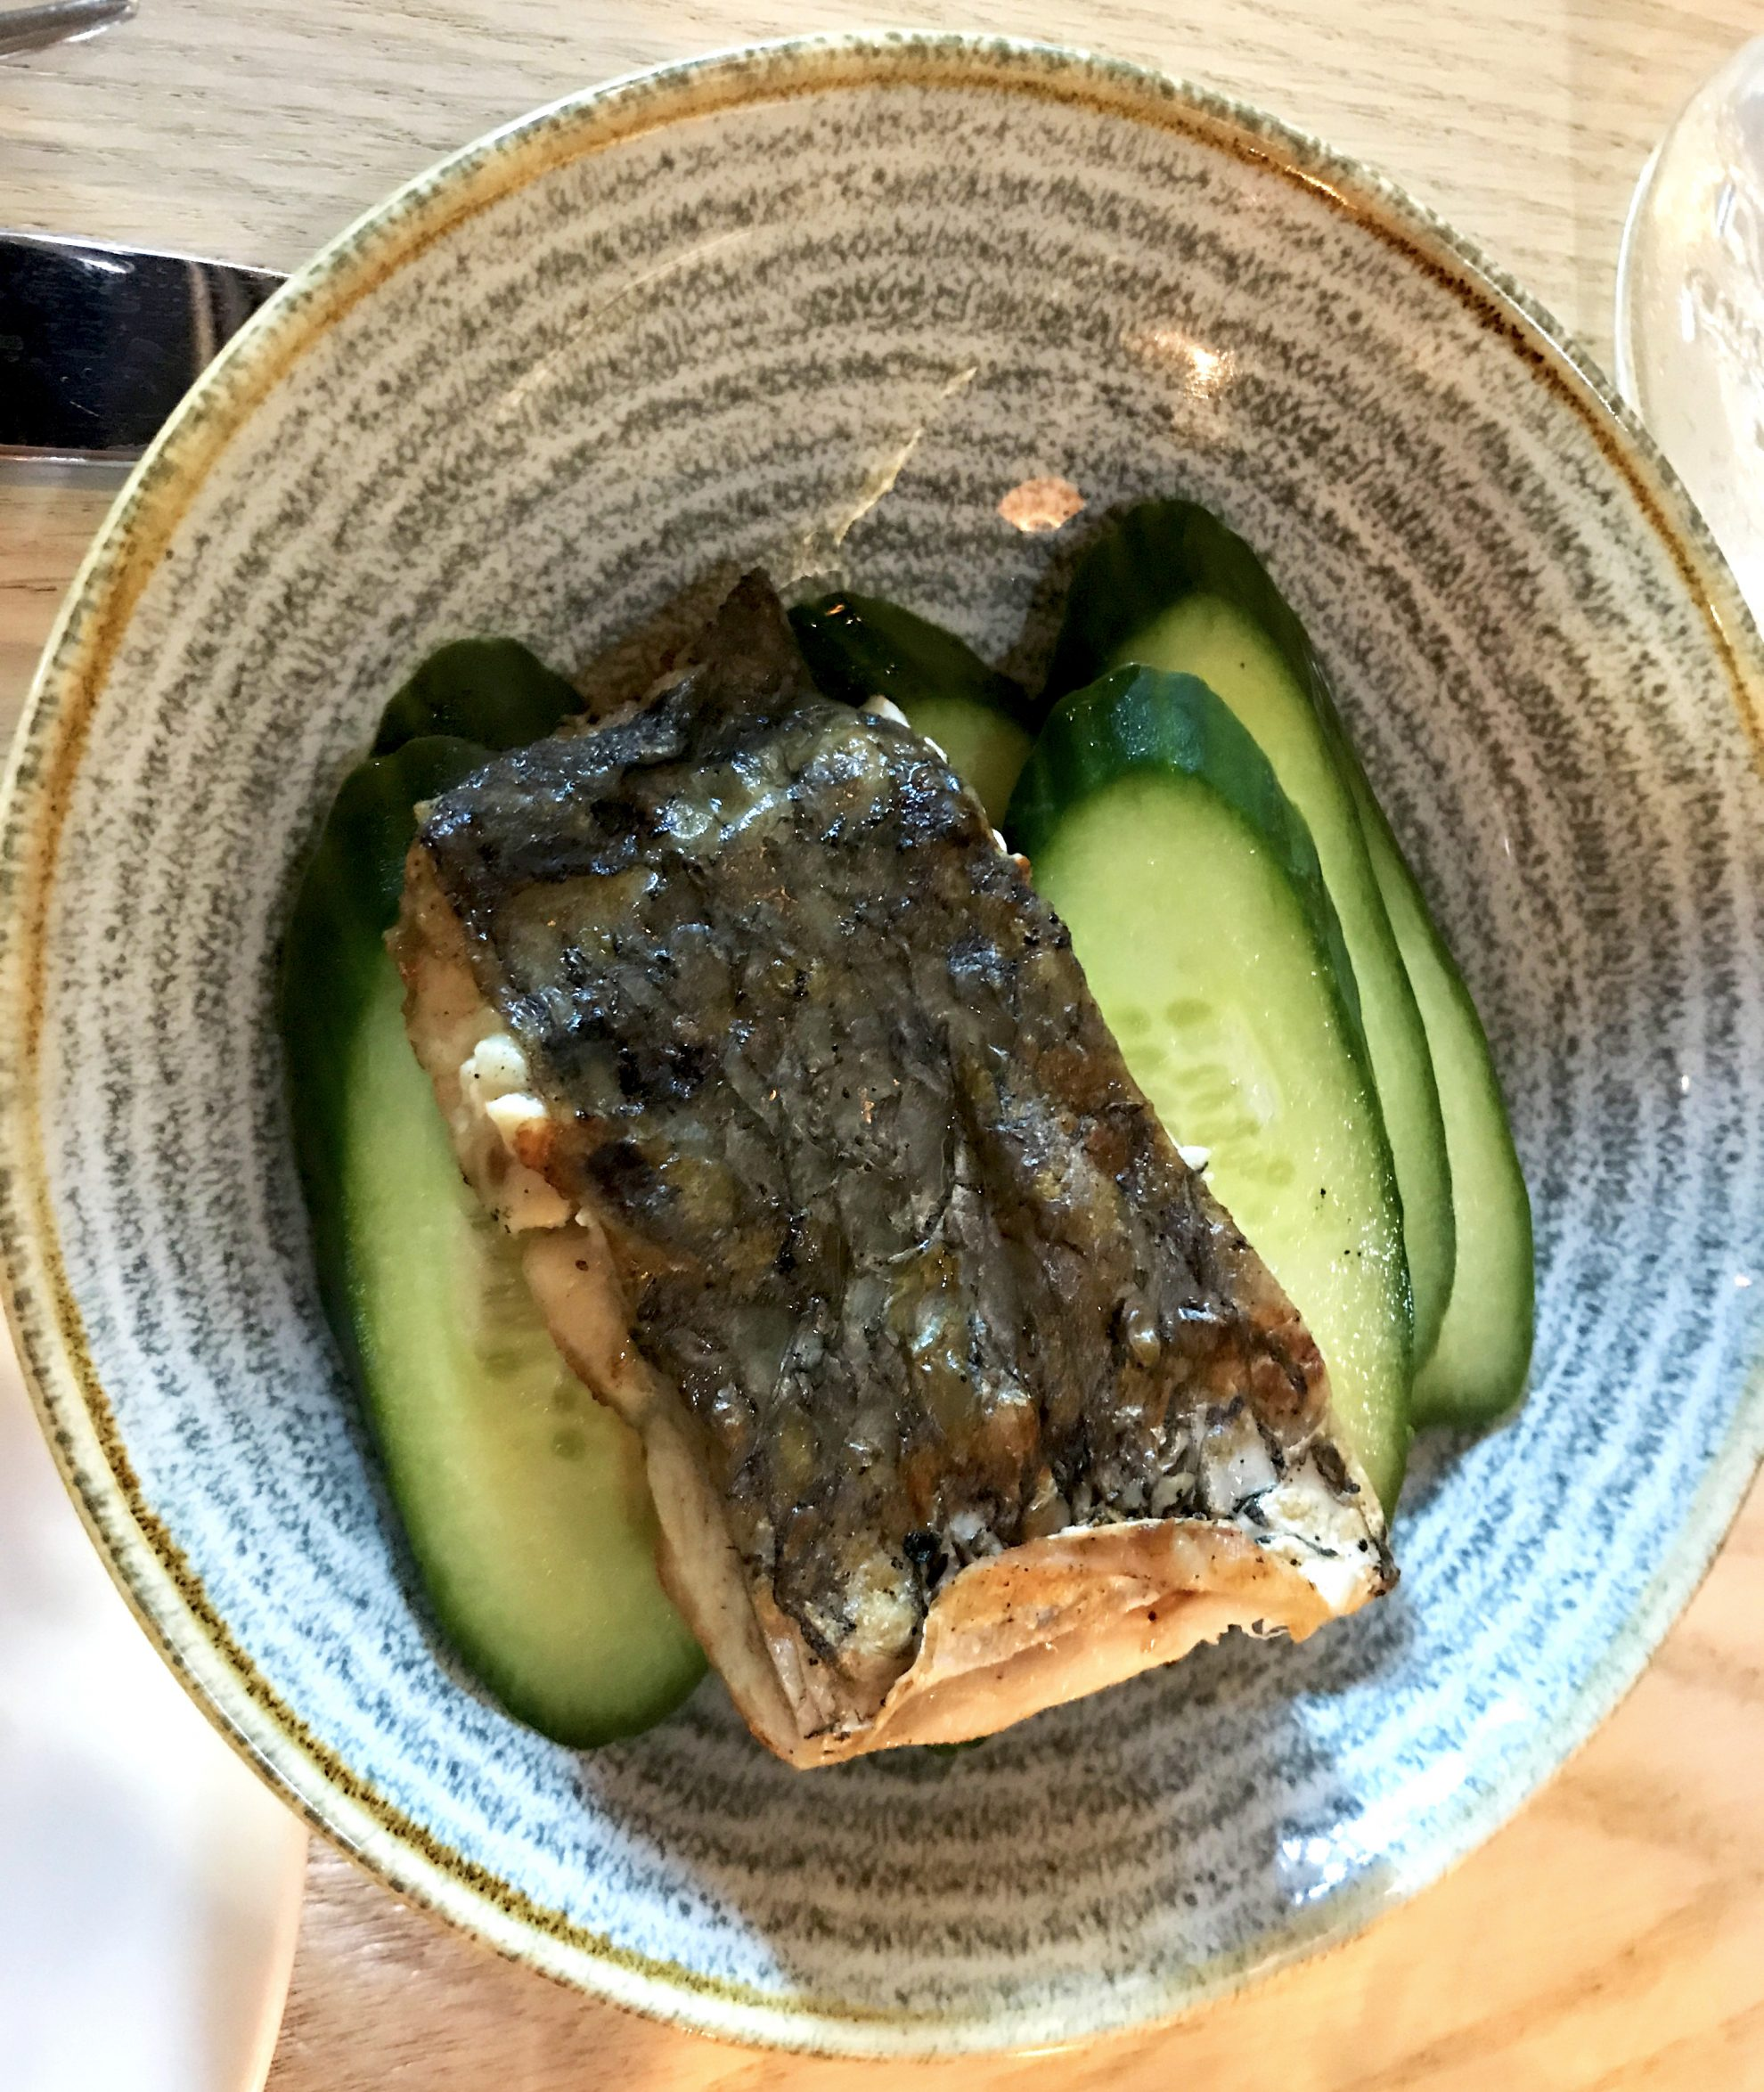 Delicious grilled seabass dish with cucumbers follows AIP dietary restrictions